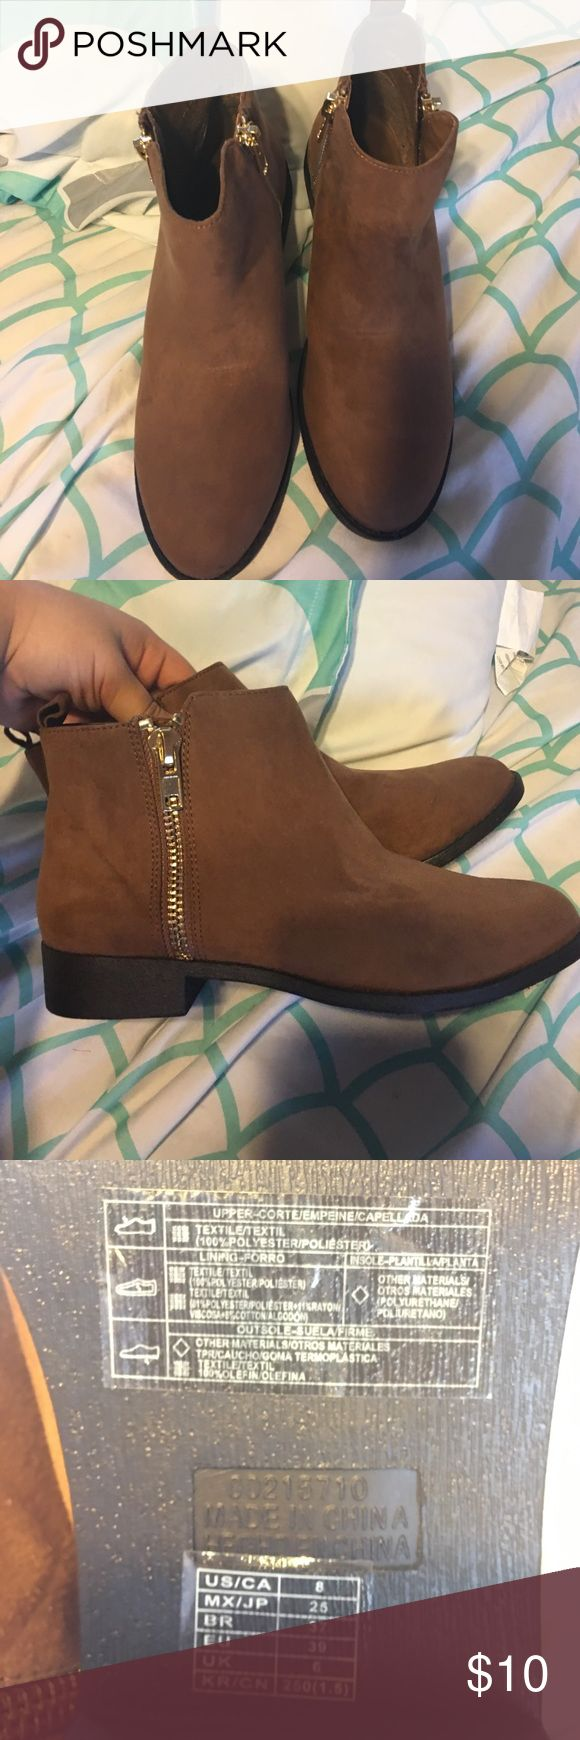 Forever 21 boots never used Short ankle boots NEVER USED Forever 21 Shoes Ankle Boots & Booties